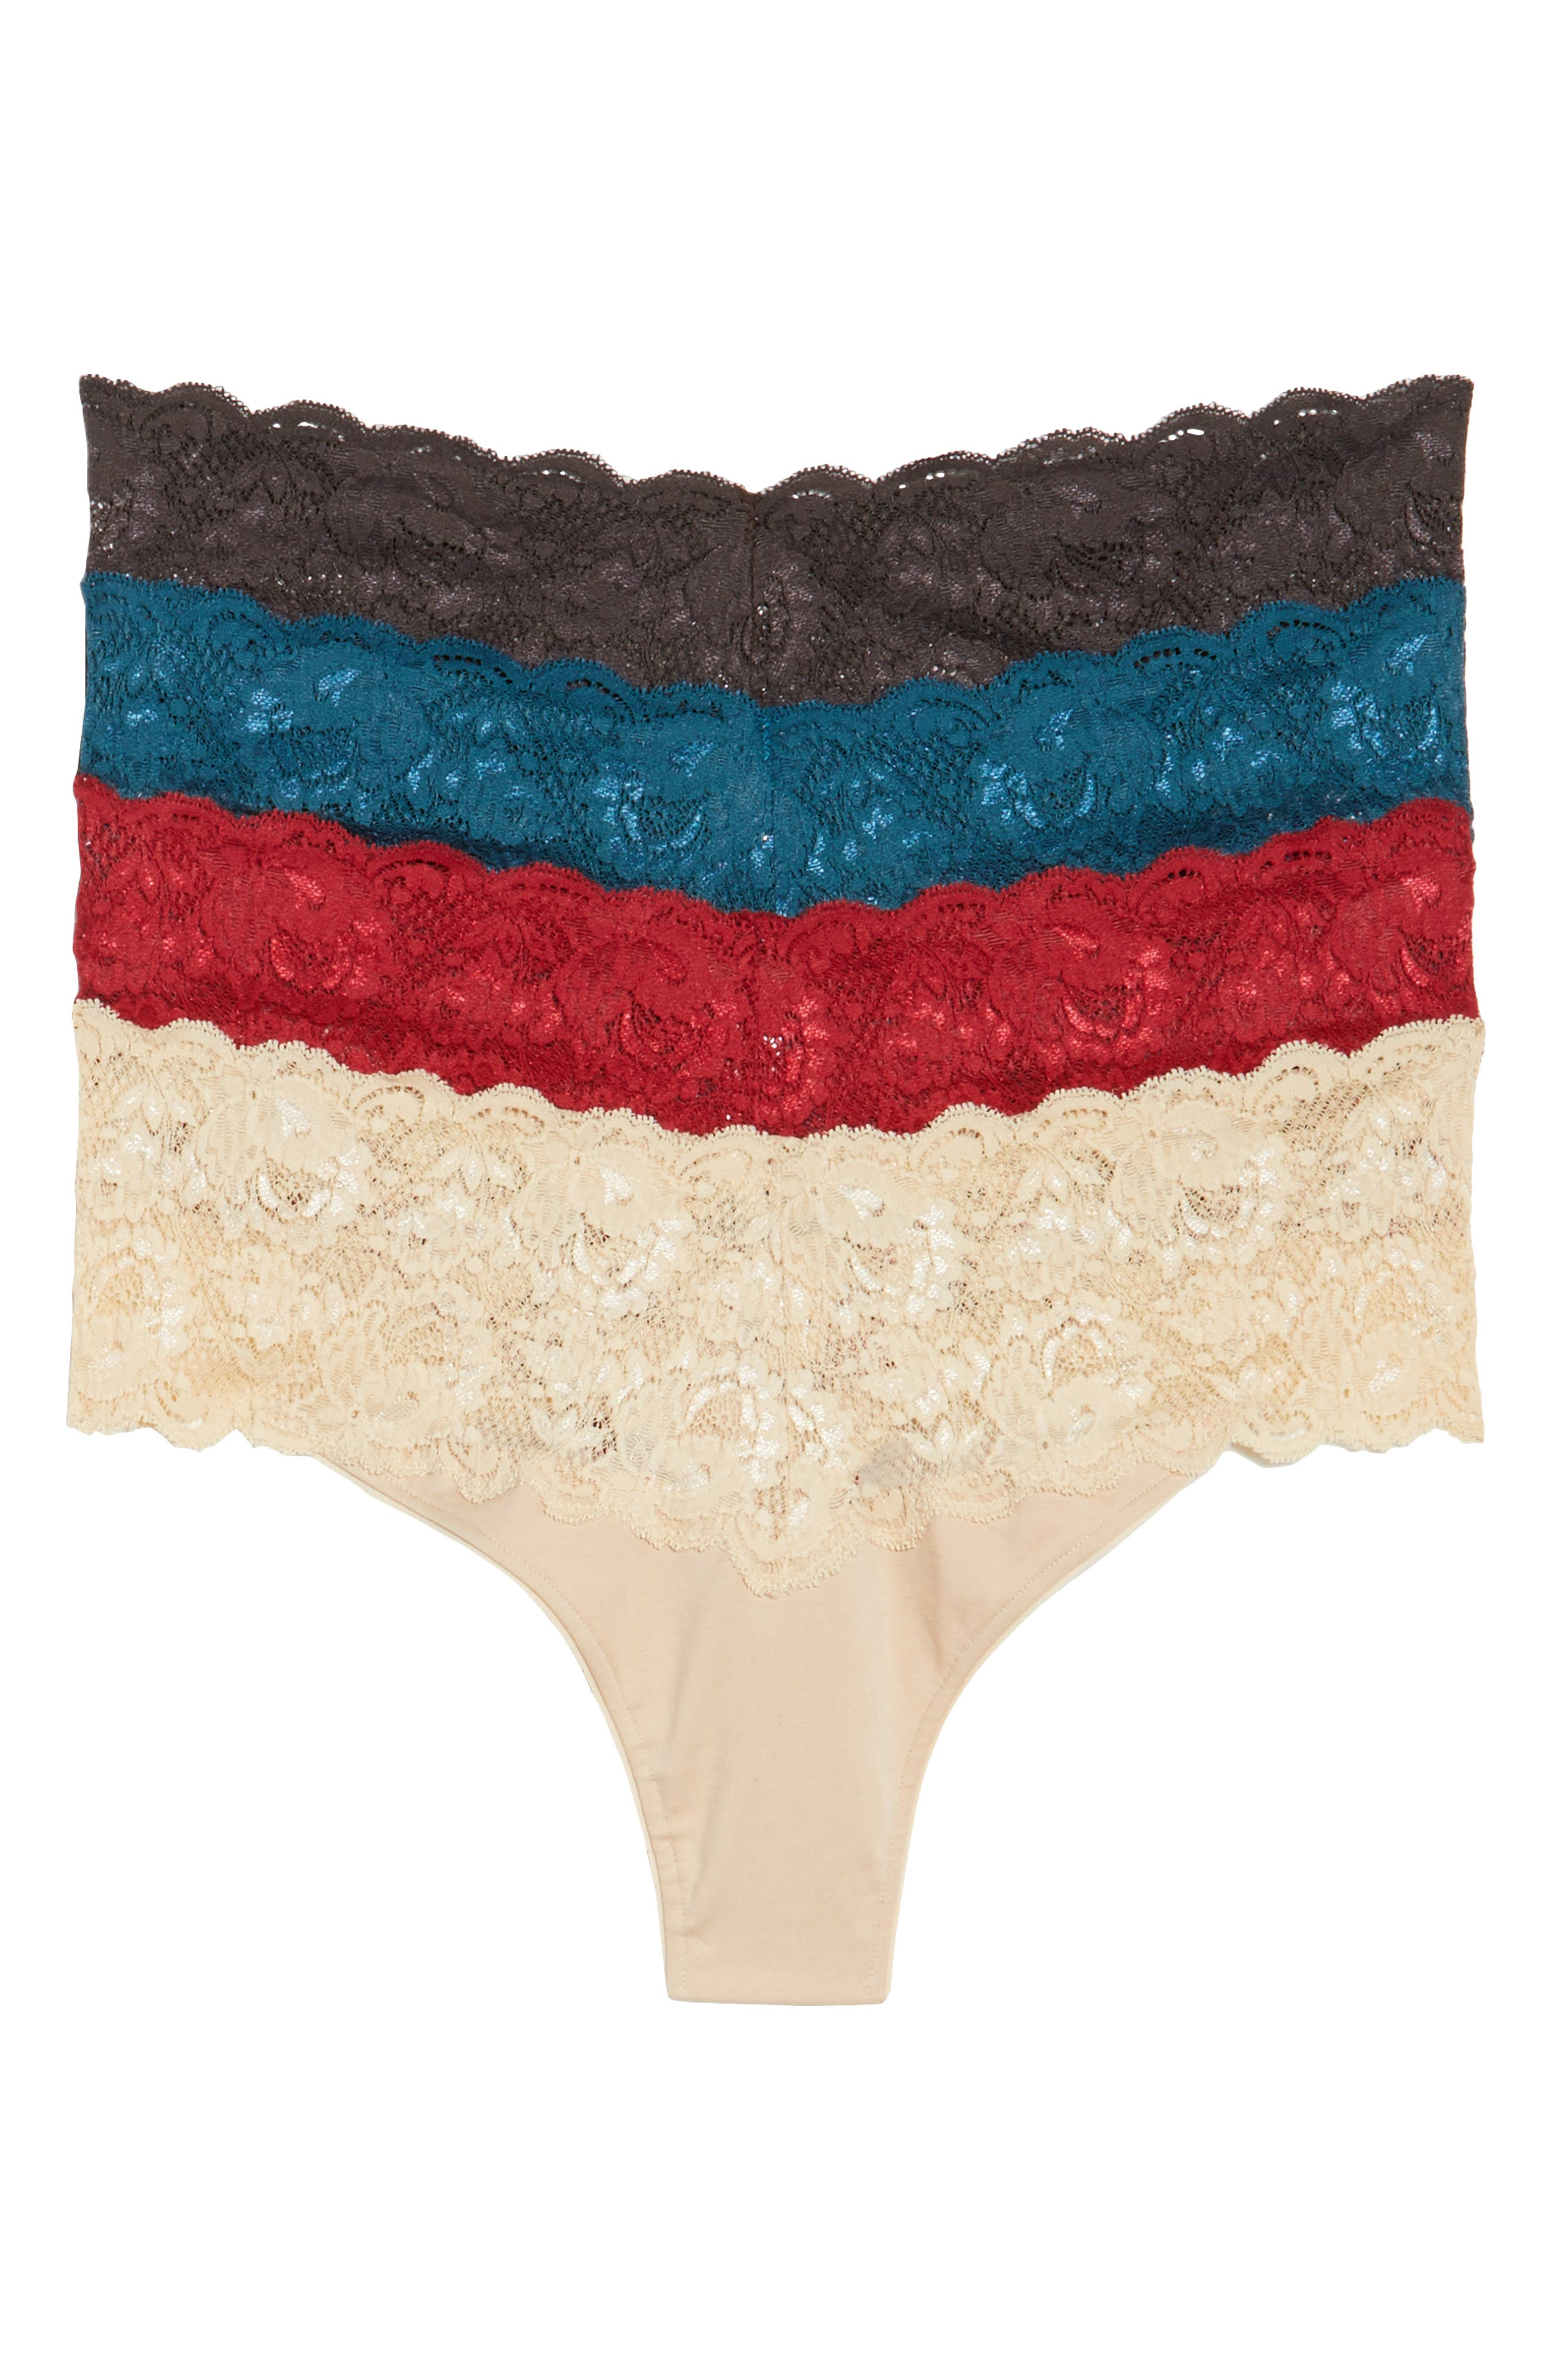 Never Say Never - Box of Love 4-Pack Thongs,                         Main,                         color, 001